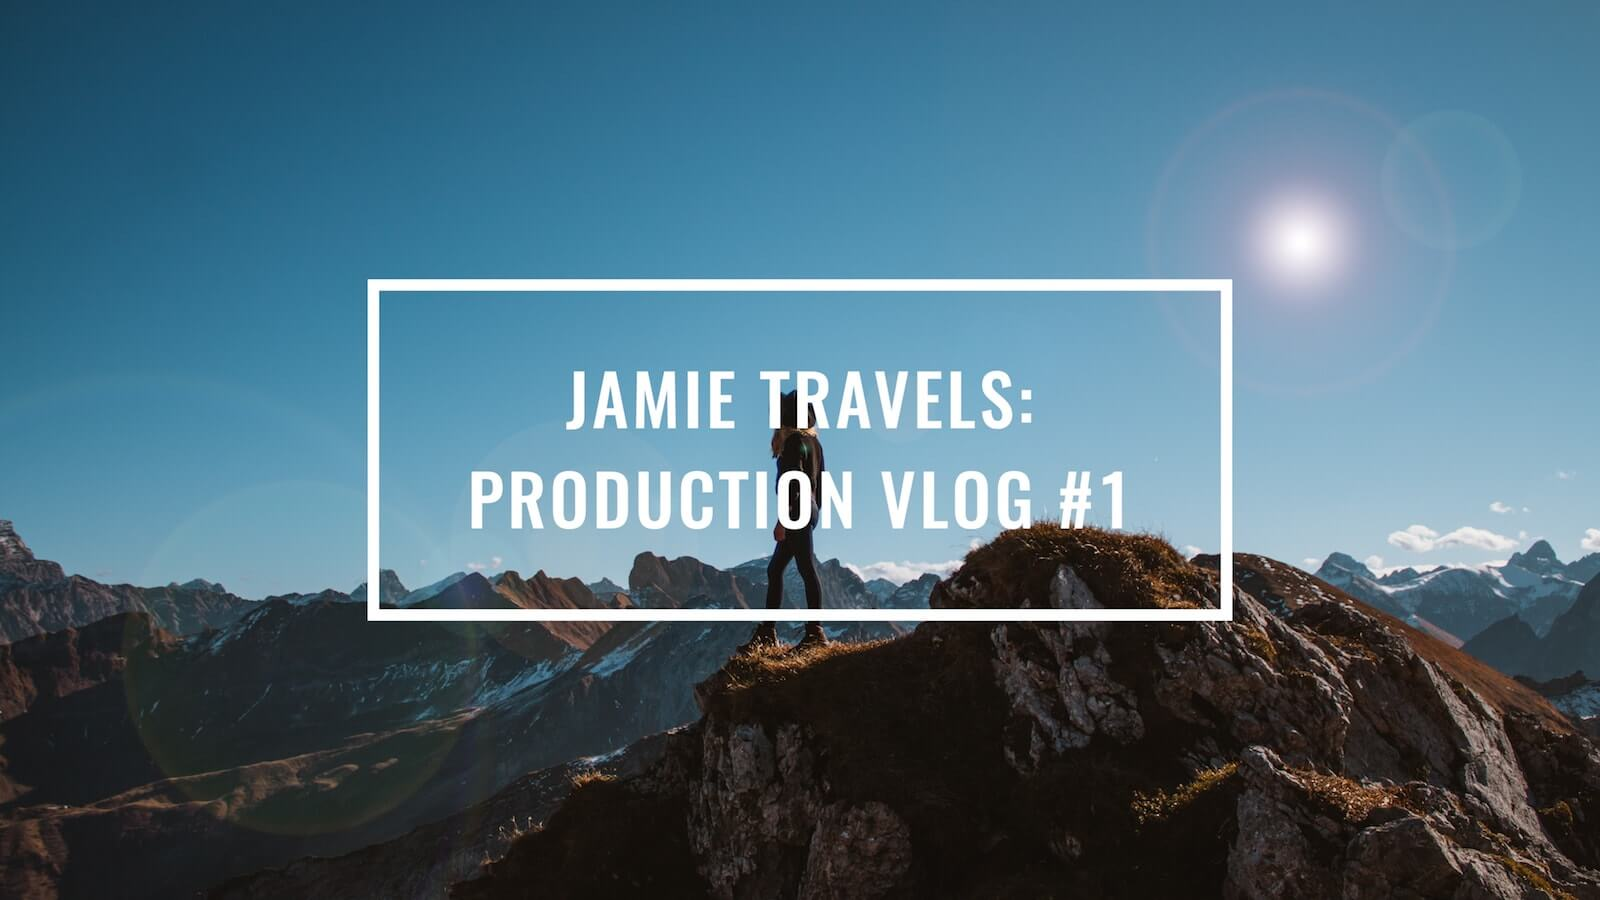 Youtube Intro Templates You Need For Your Channel [FREE Template] - Adobe Premiere Pro - Jamie's Vlog - StudioBinder